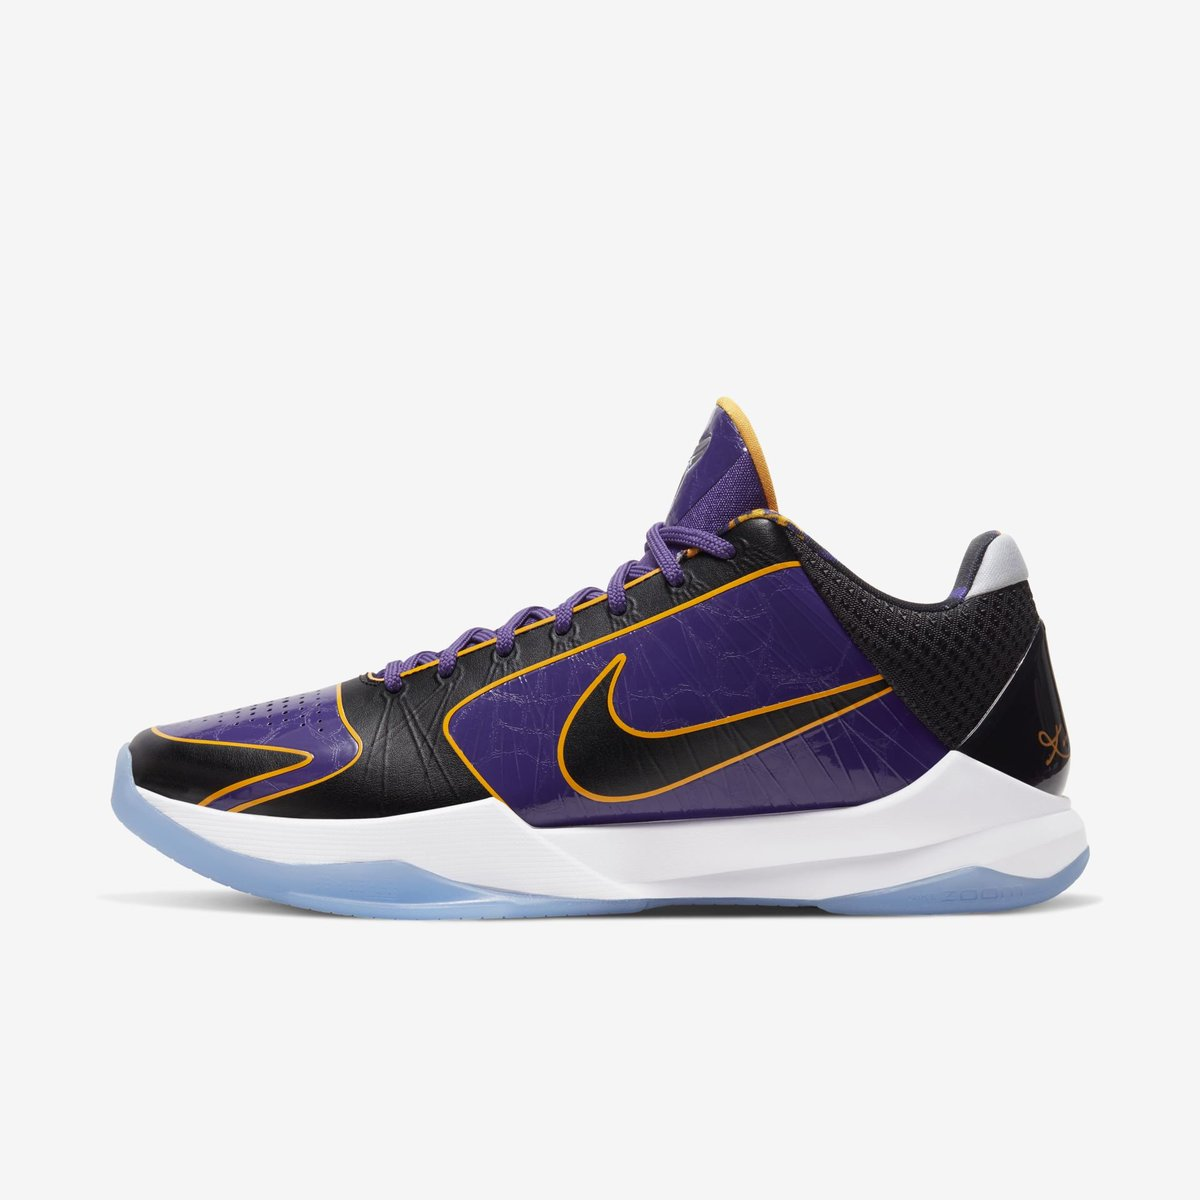 """Kobe 5 Protro """"Lakers"""" official images 👀"""